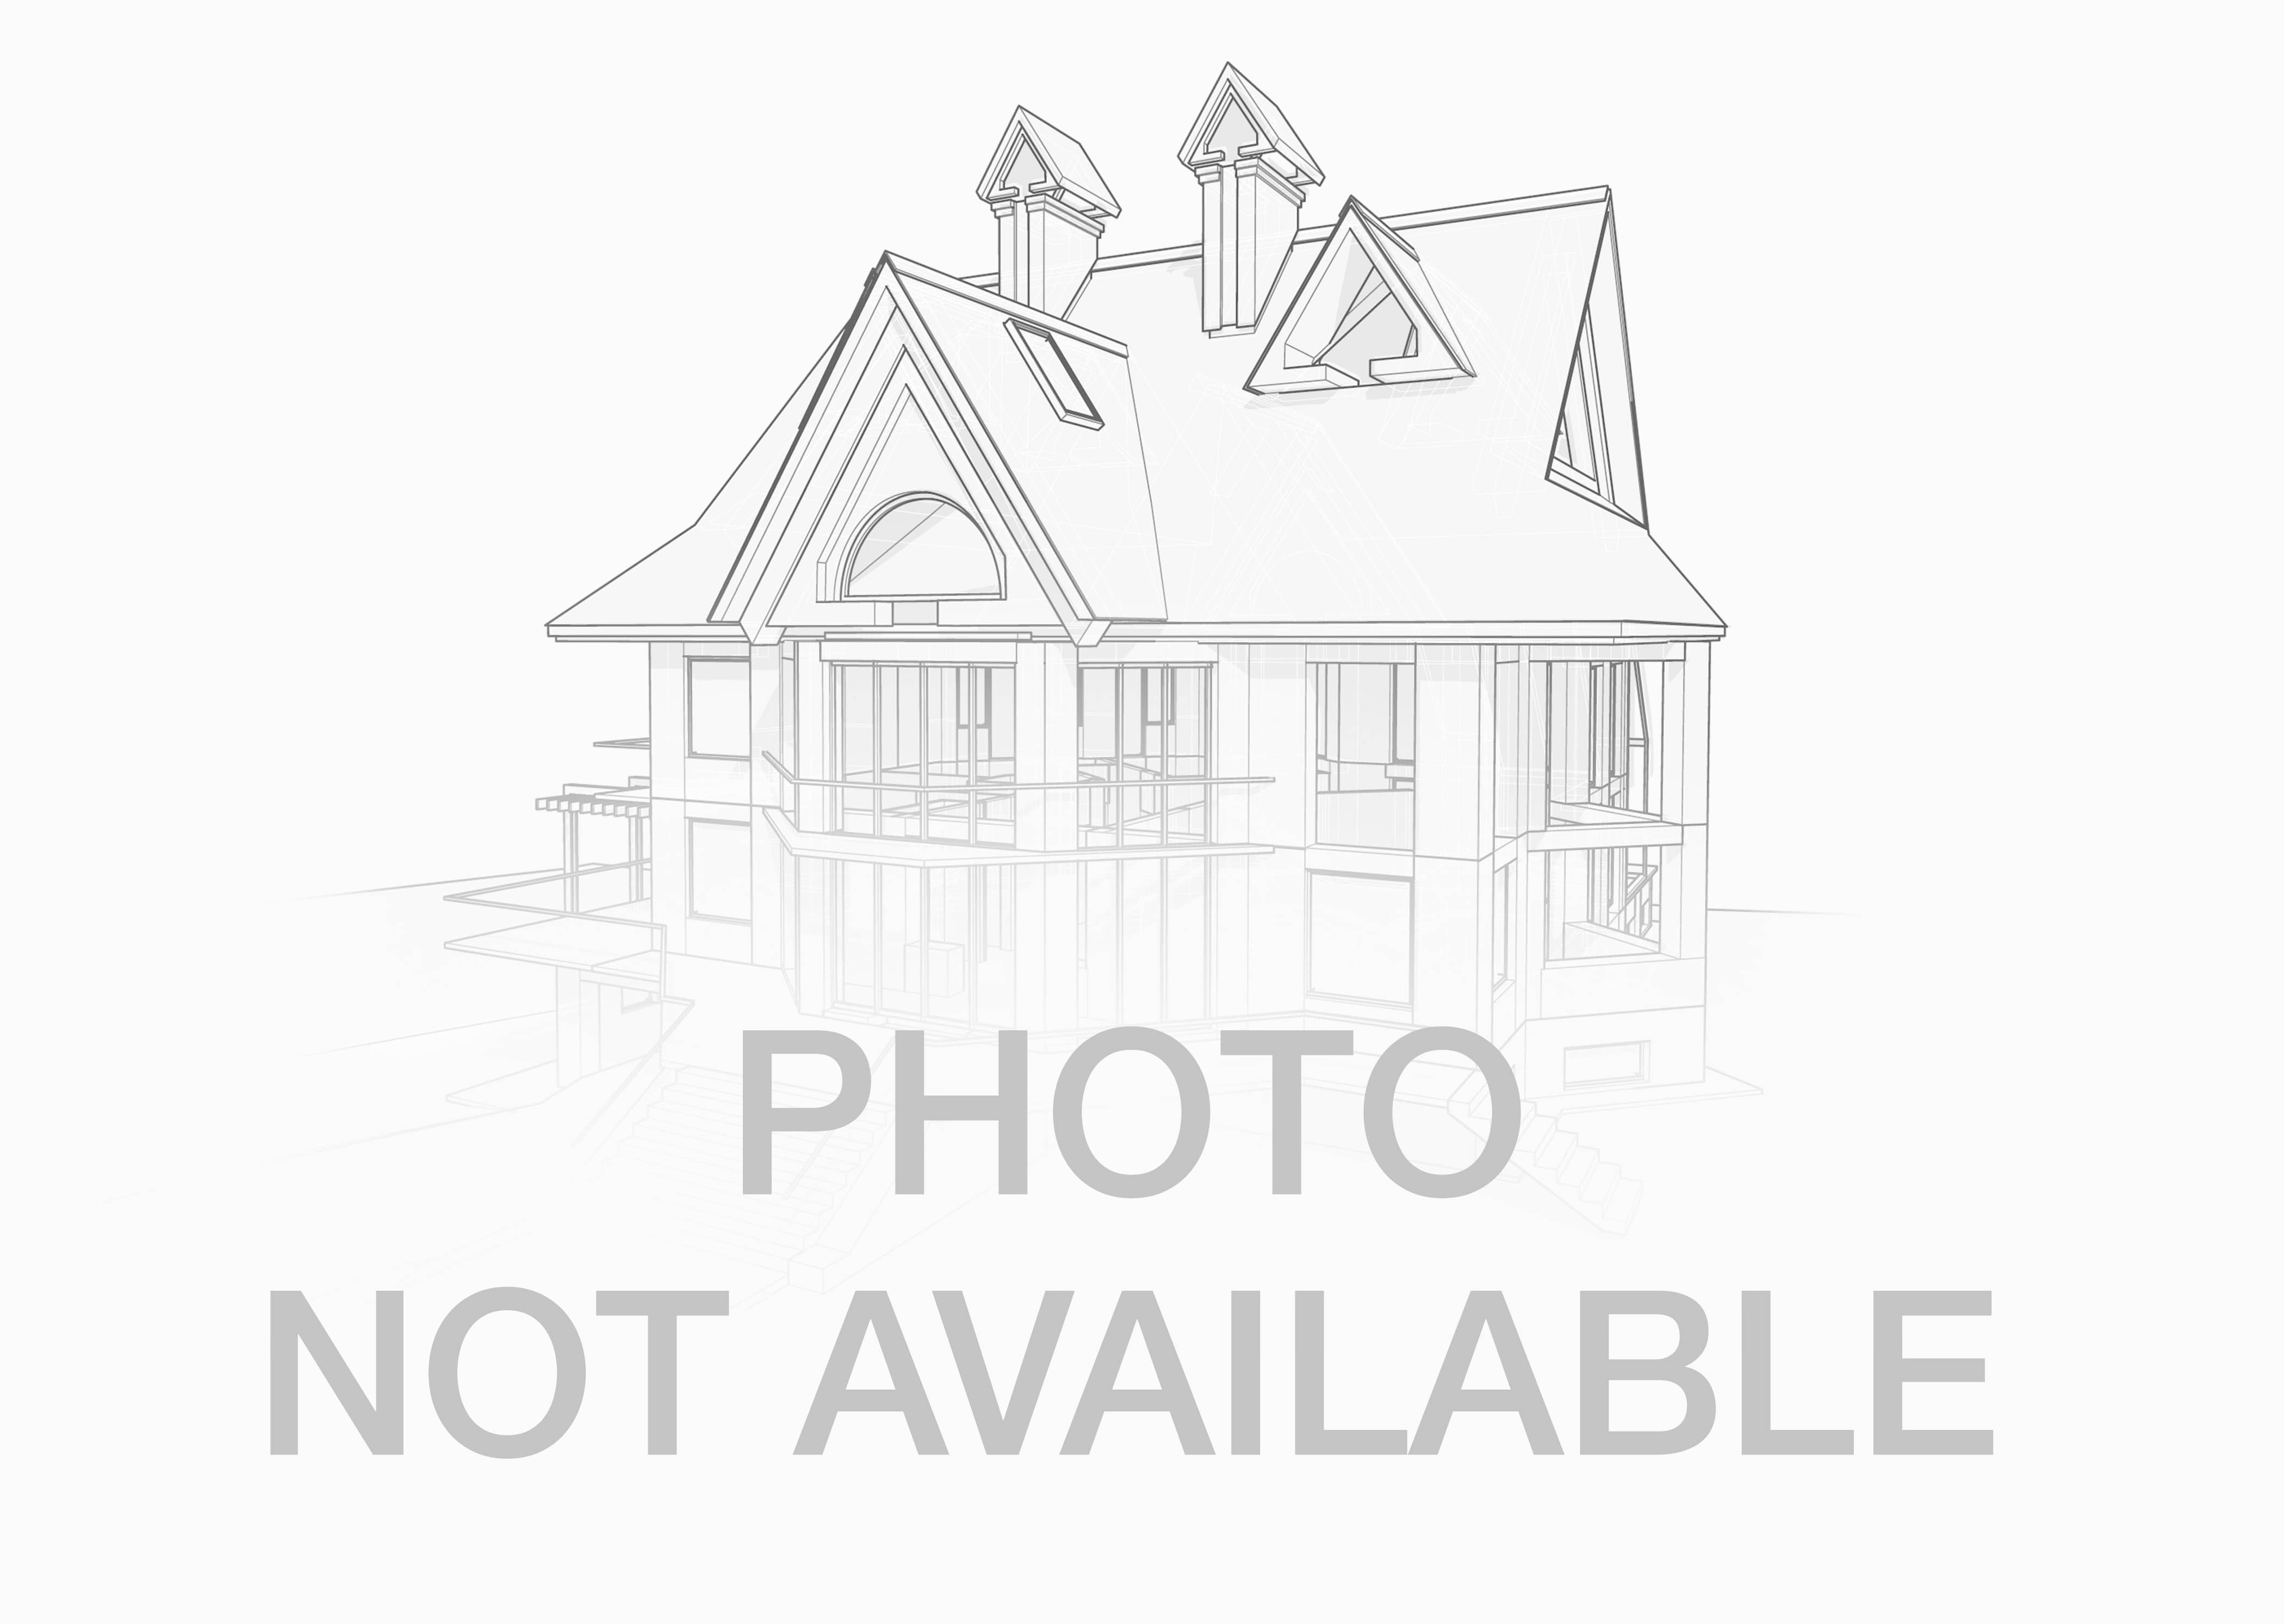 Residential Listings Willoughby Ohio Real Estate Properties For